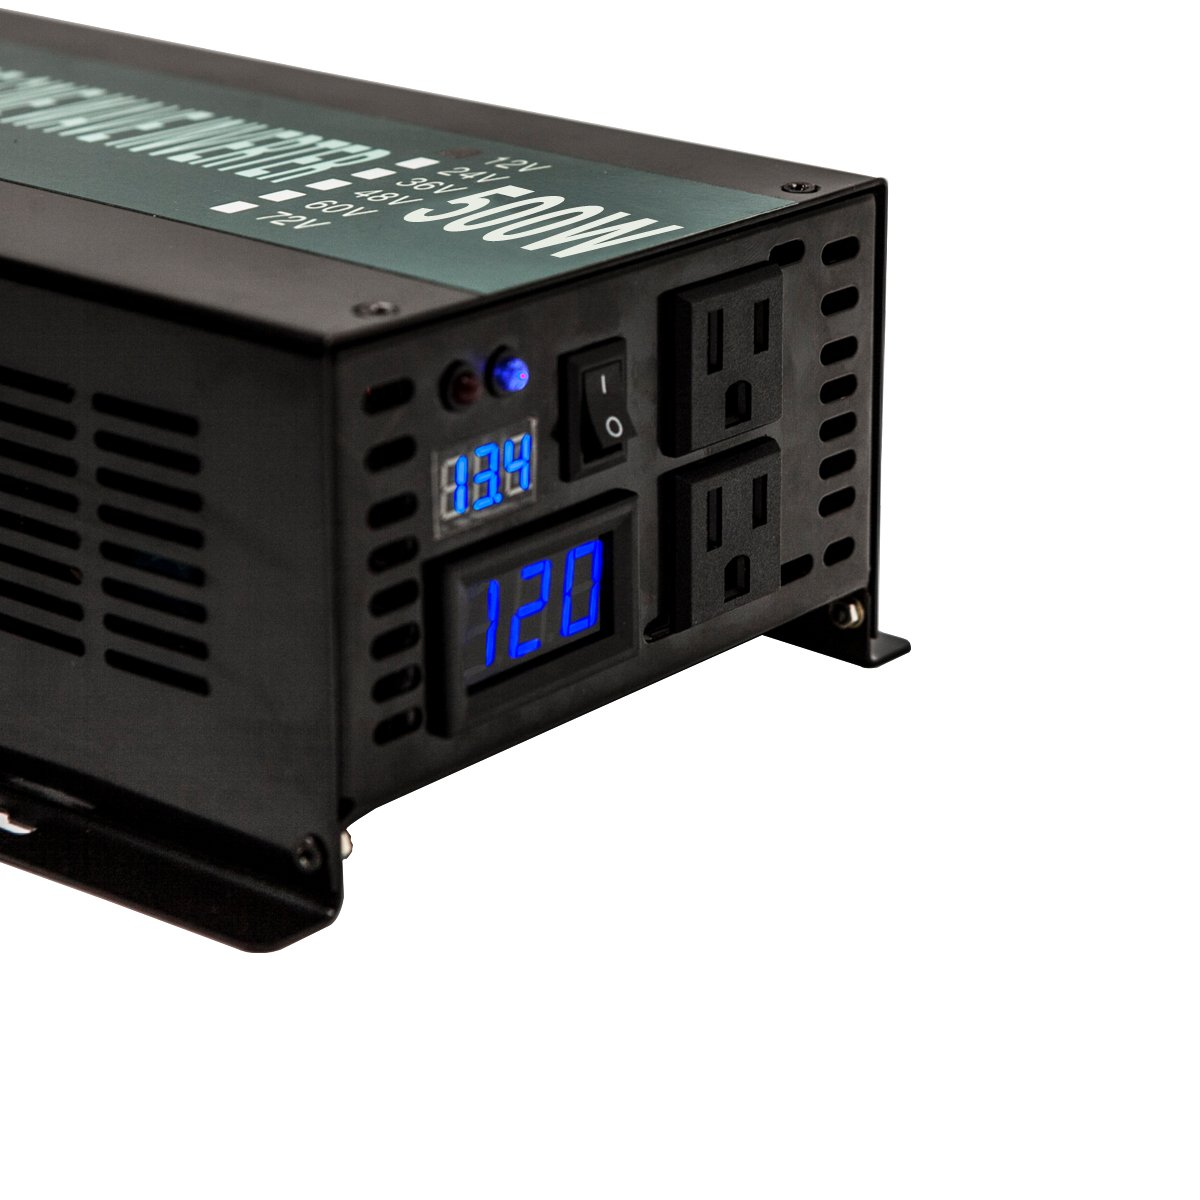 WZRELB Reliable Power Inverter 800w 1600w Peak Pure Sine Wave Inverter 12v 120v 60hz LED Display by WZRELB (Image #6)